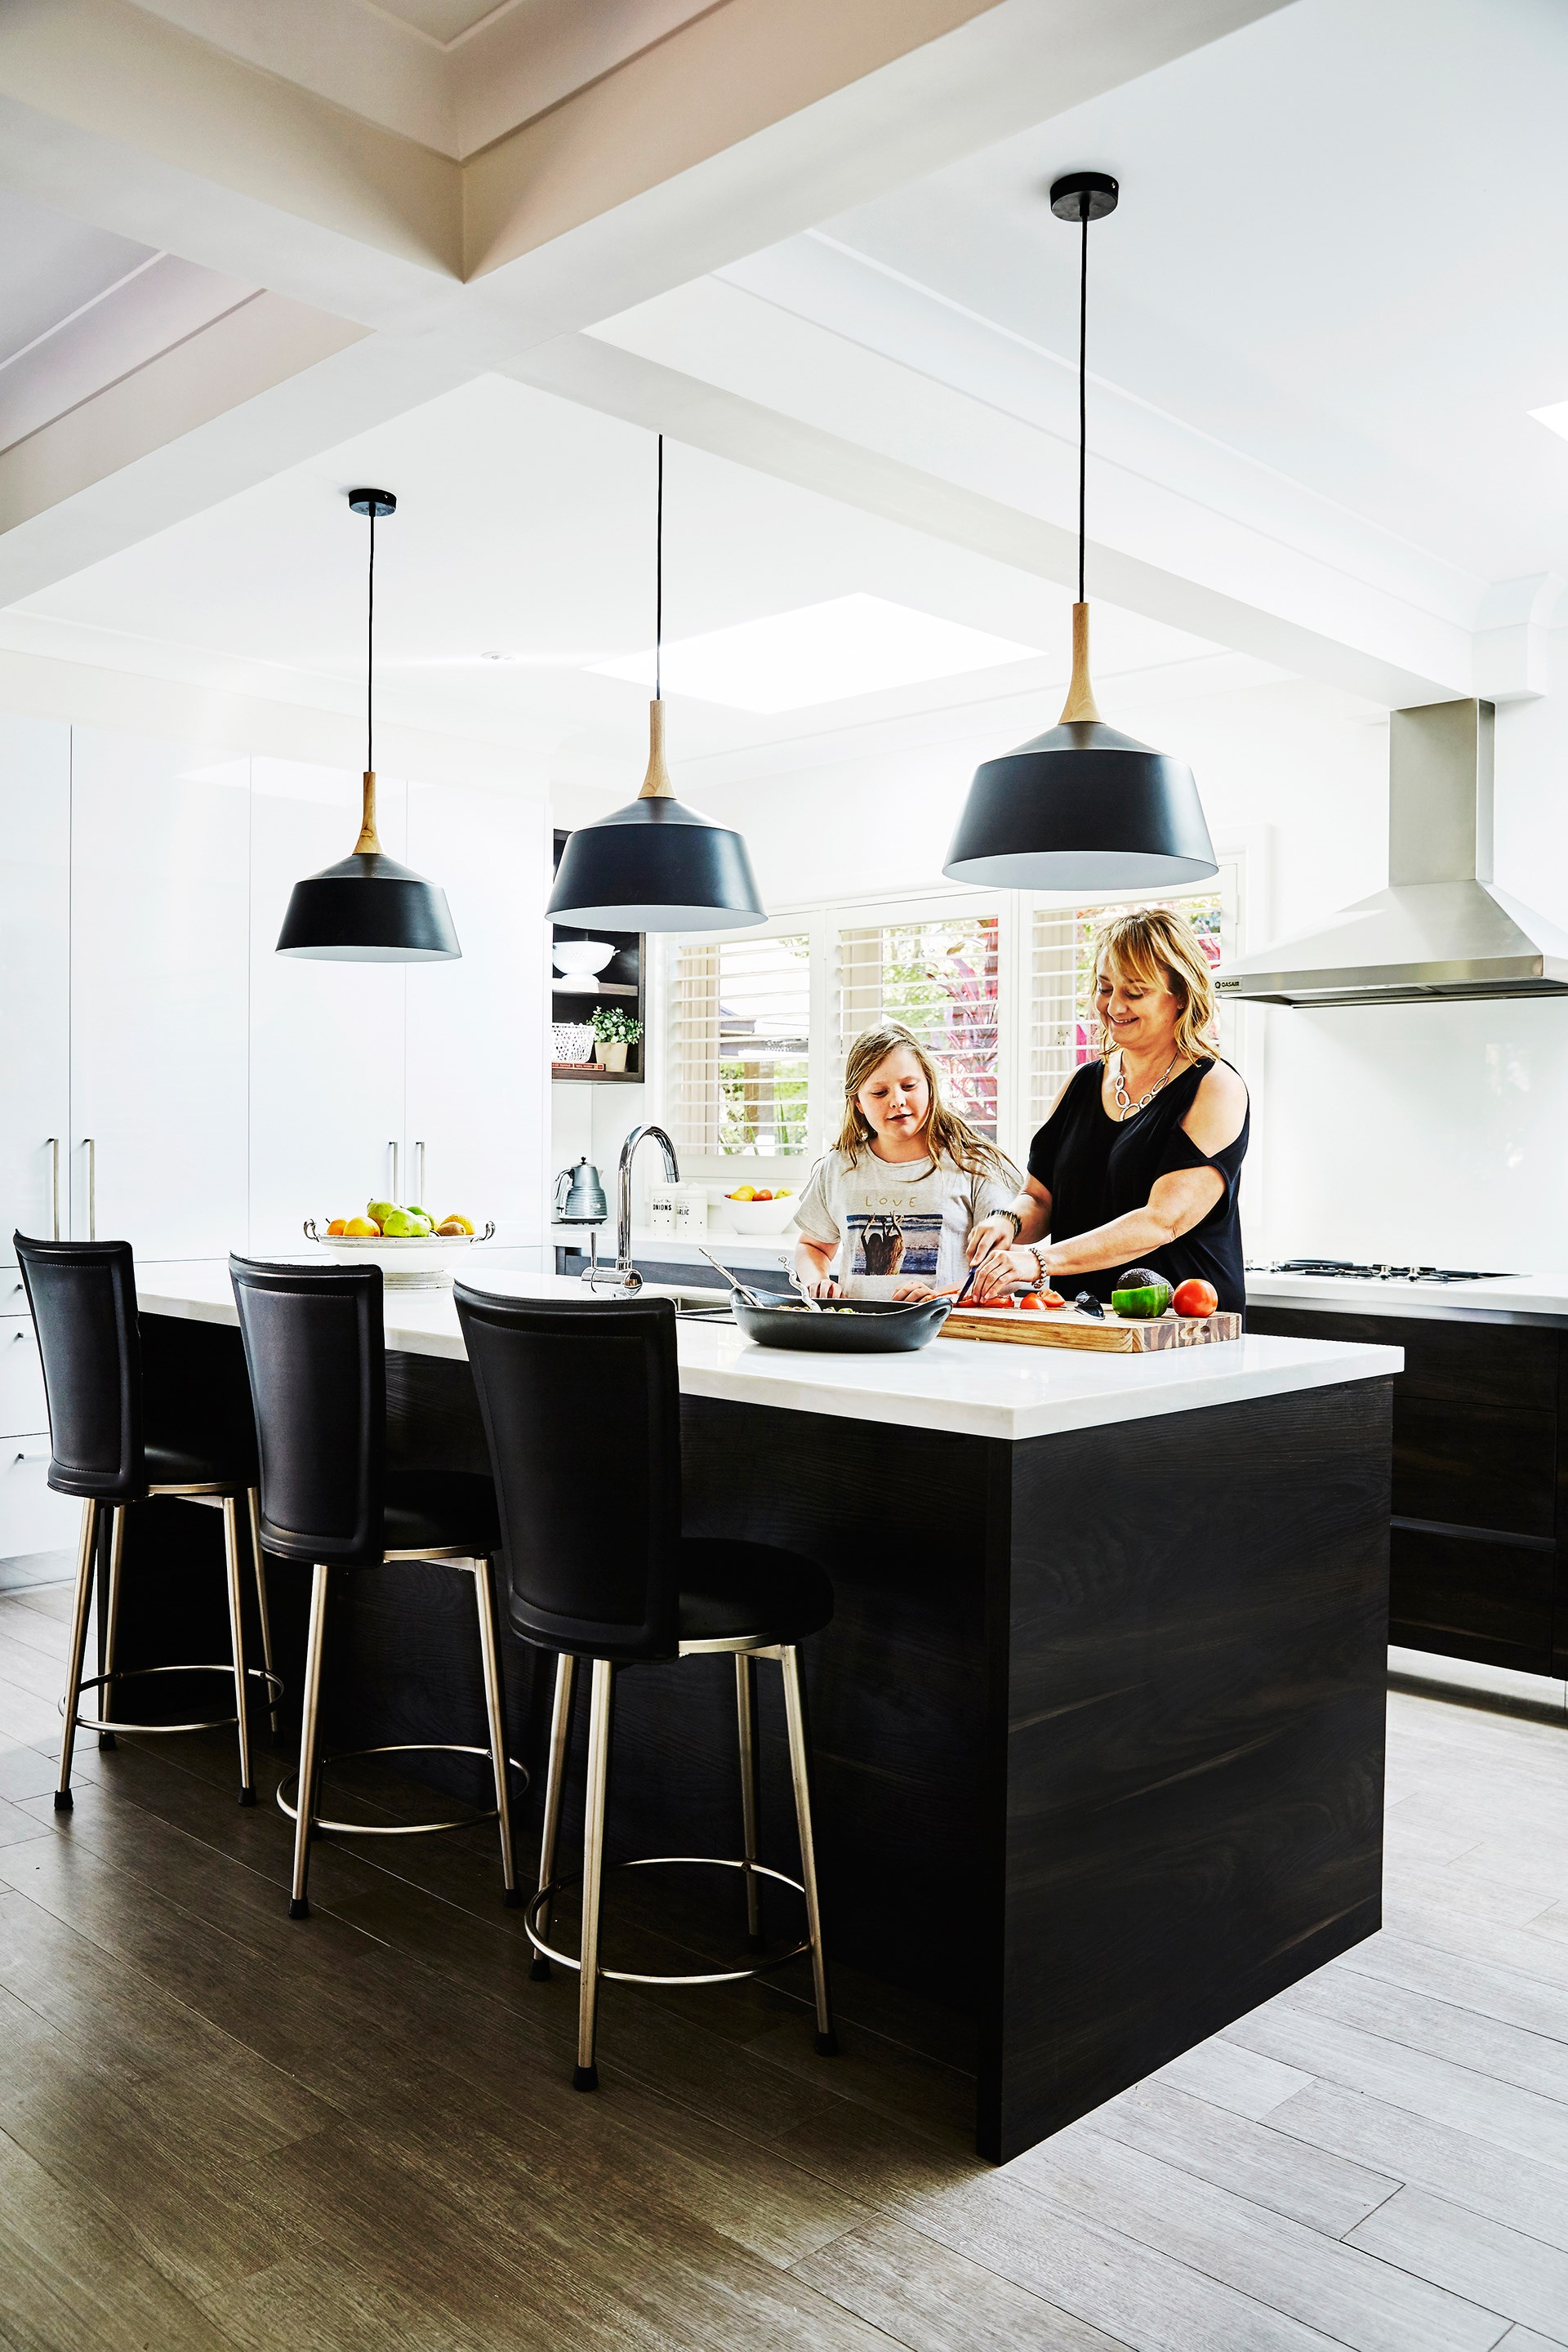 """By knocking down a wall between the kitchen and the formal dining room we created an enormous space for an open-plan kitchen, which provides for practical entertaining because everyone wants to gather around the cook!"" says Nicole."